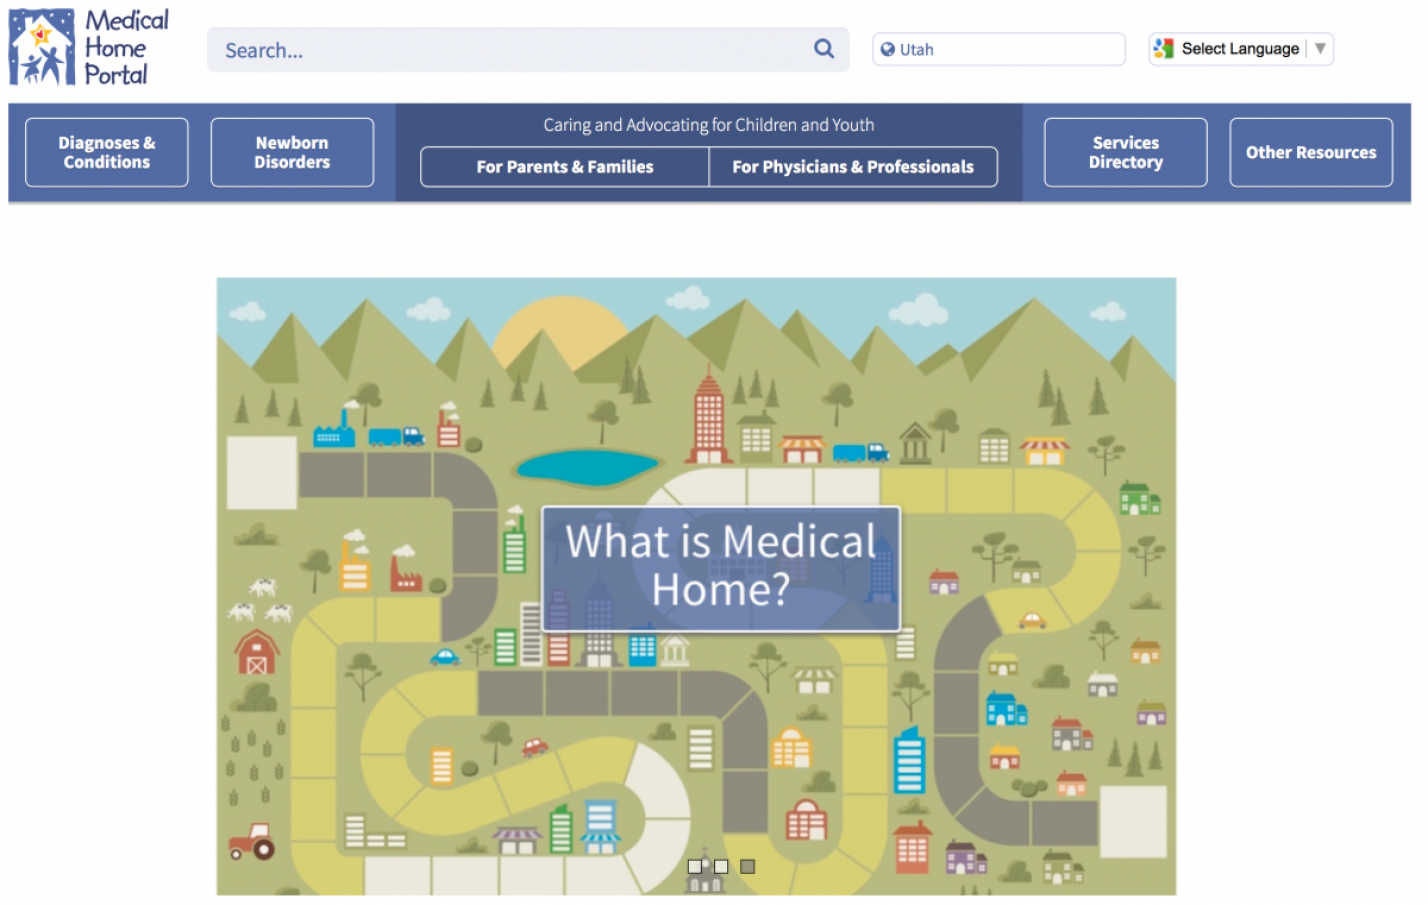 Biomedical content management and presentation (Medical Home Portal)